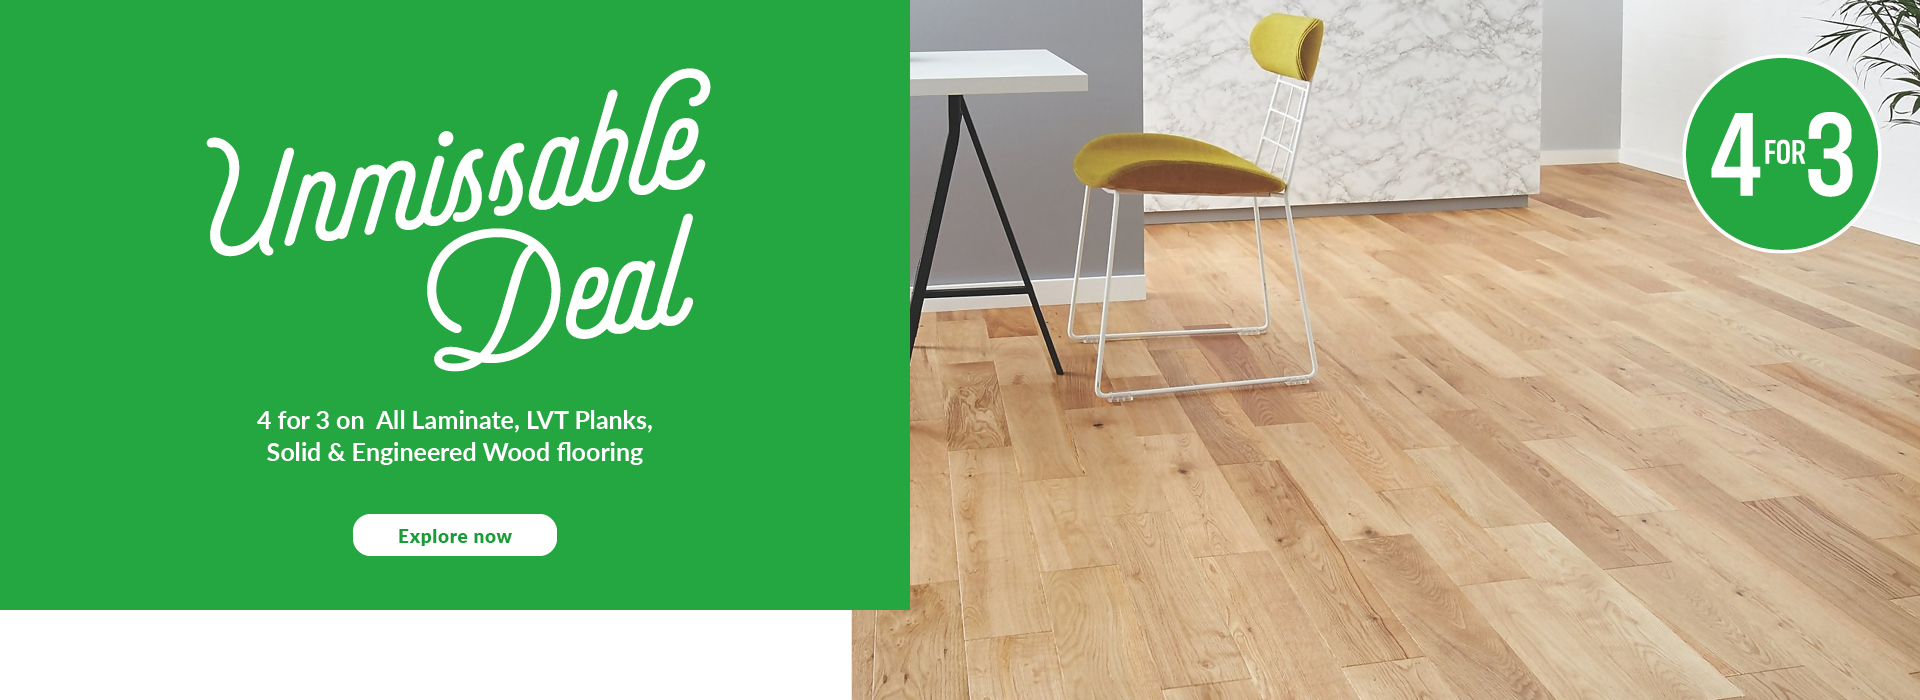 Stop you in your tracks. Check out our floor visualiser to see how our new laminate flooring styles could transform your space. Try it now.